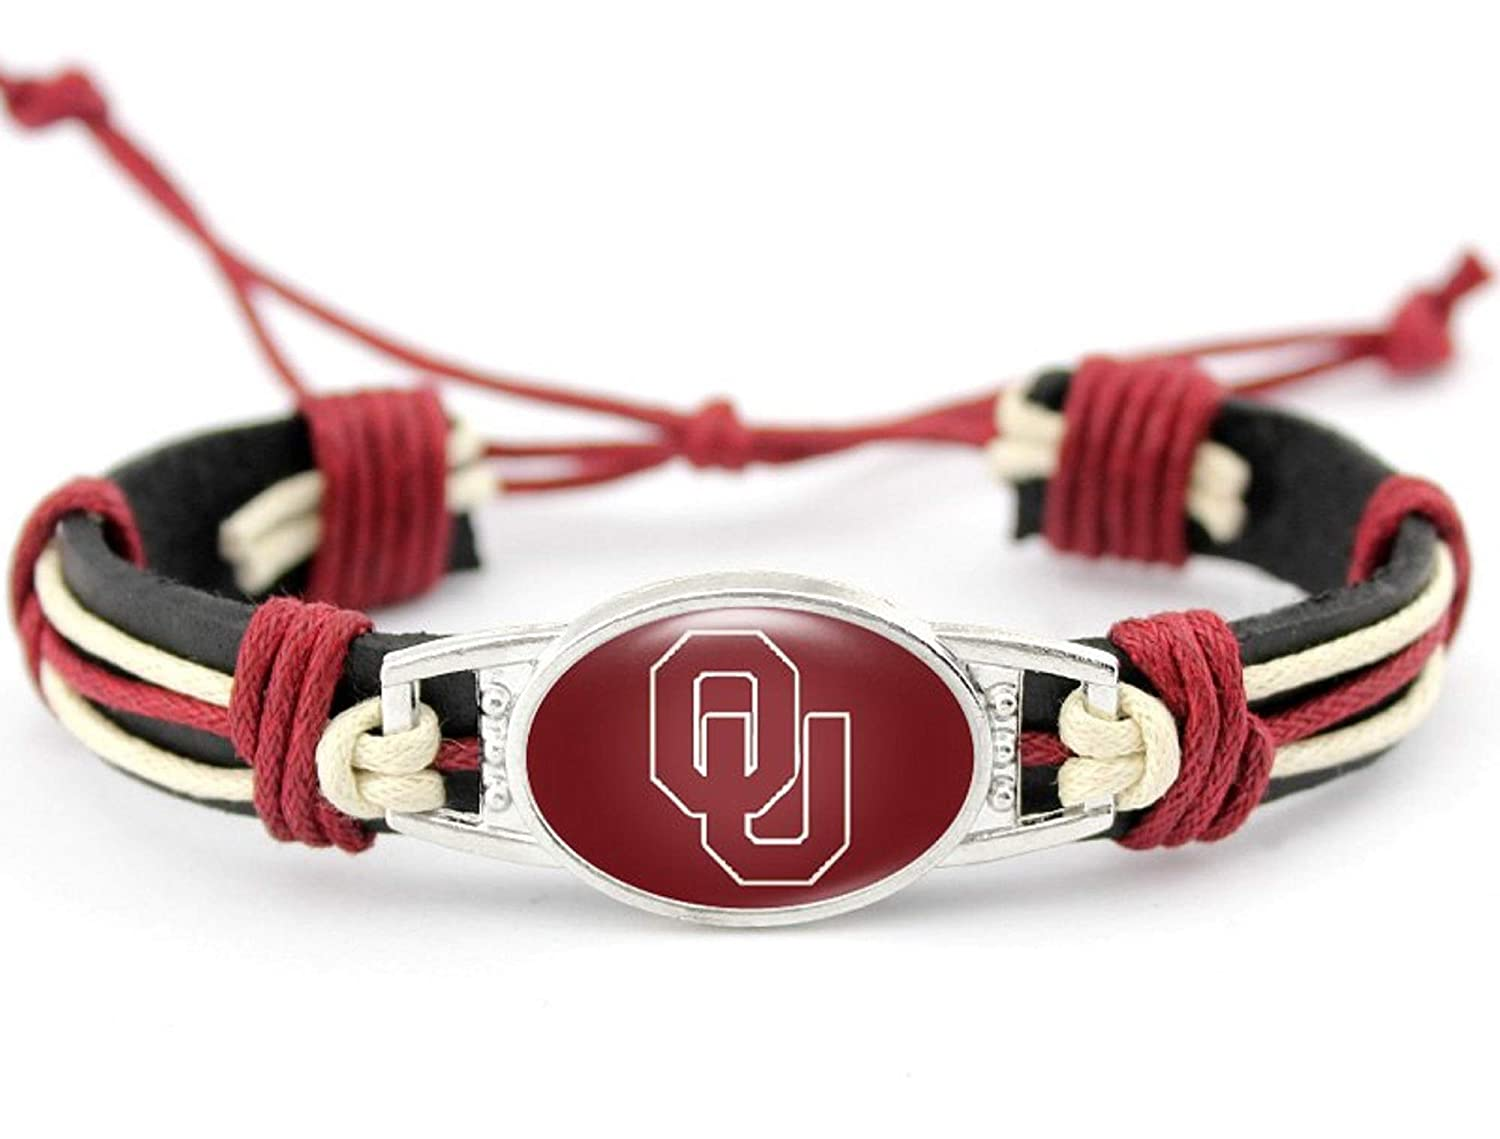 BAS Oklahoma Sooners Real Leather Adjustable Cord Tie 7 inches to 10 inches